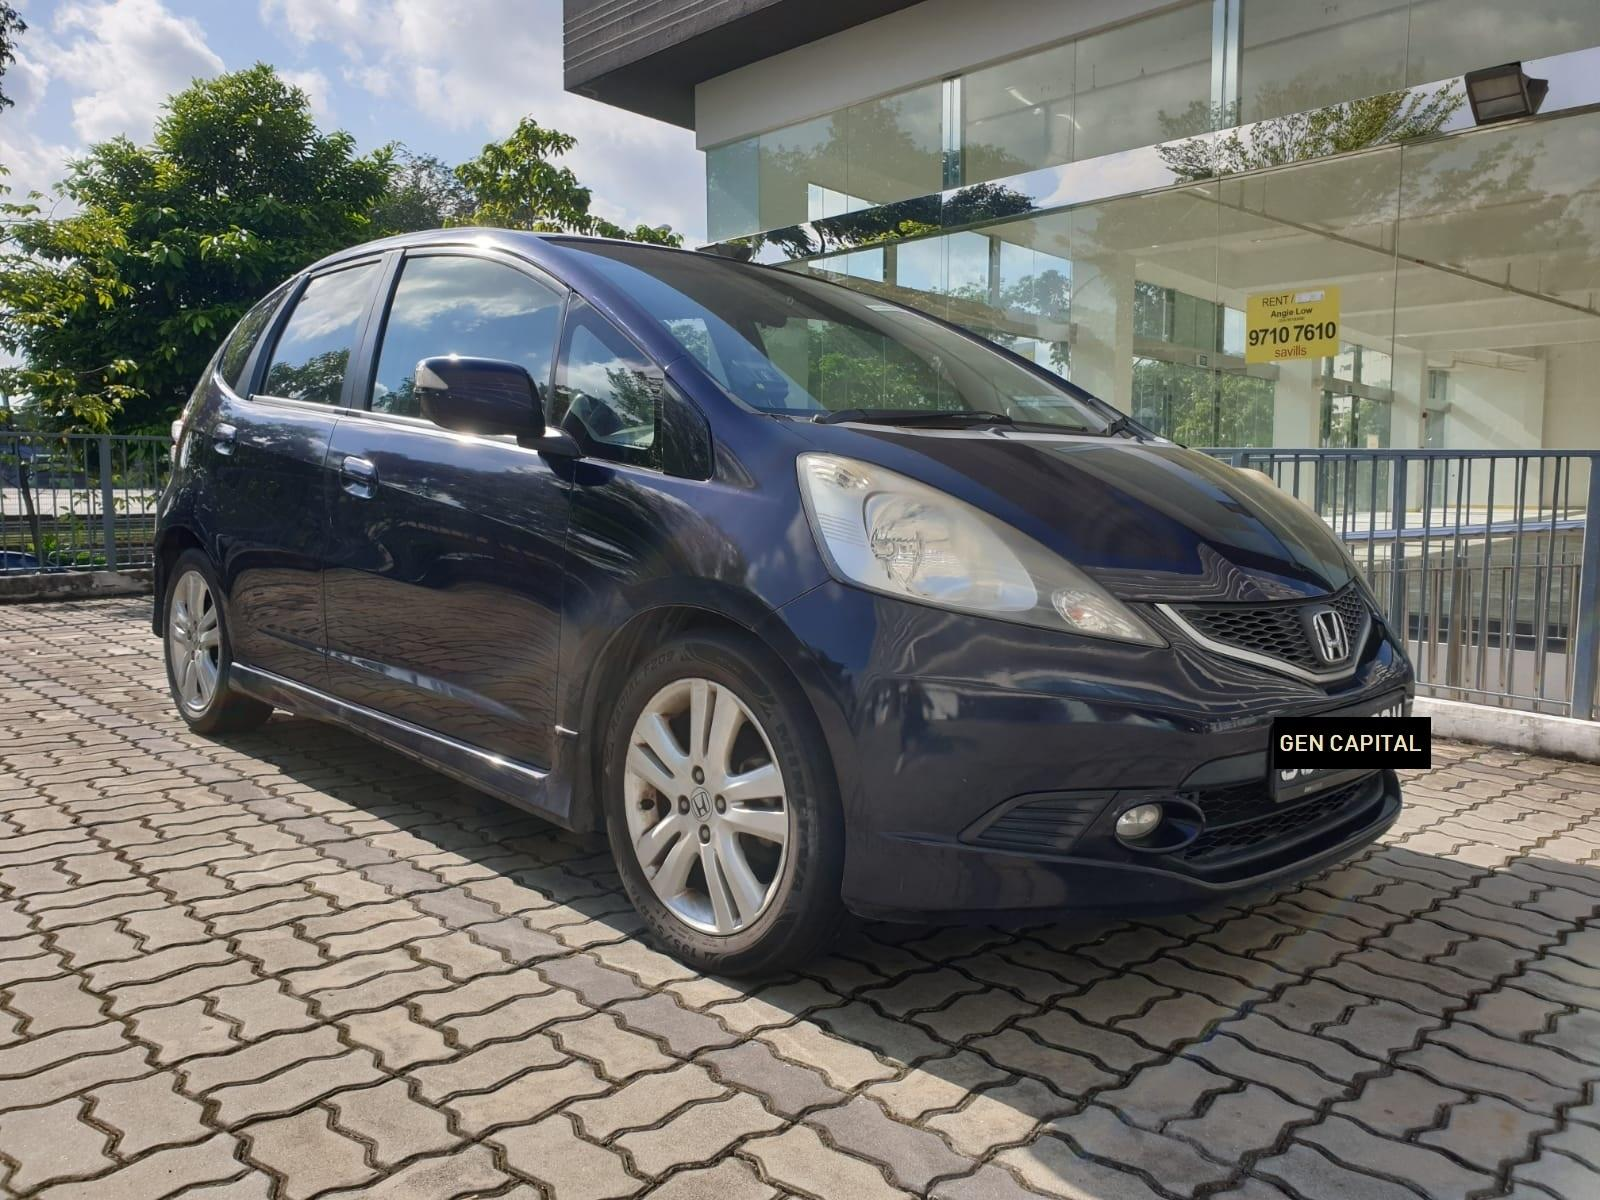 Honda Jazz 1.5A - Lowest rental rates, good condition!